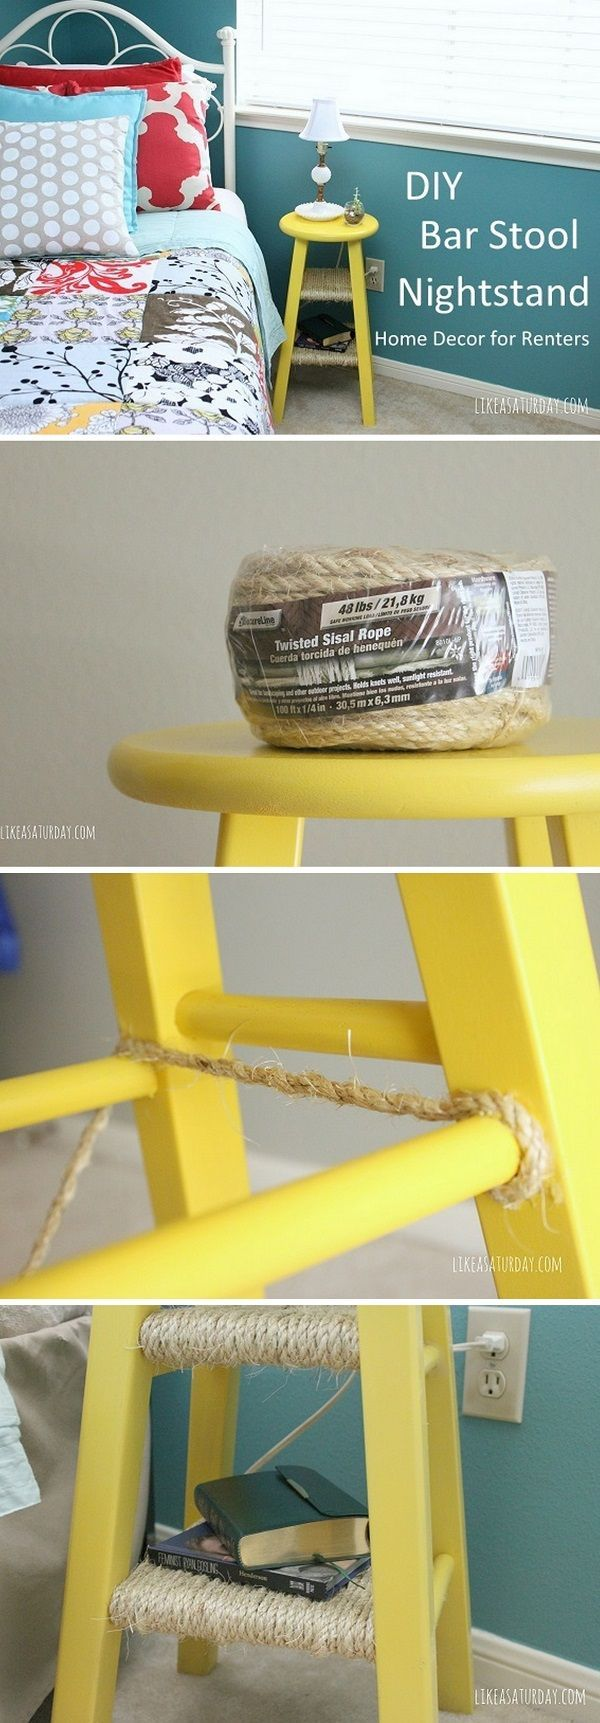 Check out this easy idea on how to make a #DIY bar stool nightstand #homedecor for #renters #project #budget @istandarddesign